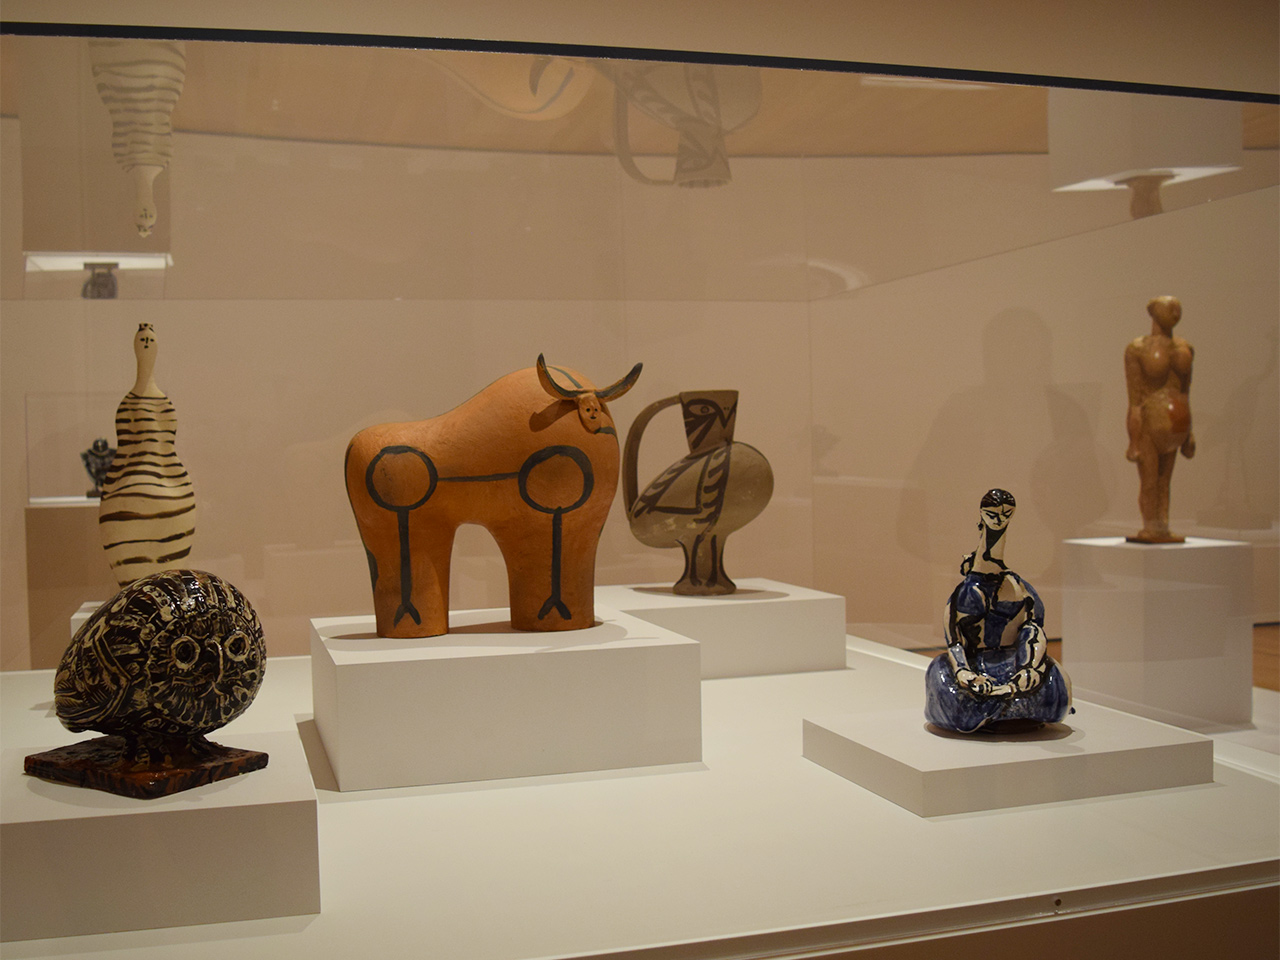 Installation view of Pablo Picasso's ceramic works from between 1945 and 1953 in 'Picasso Sculpture' at the Museum of Modern Art